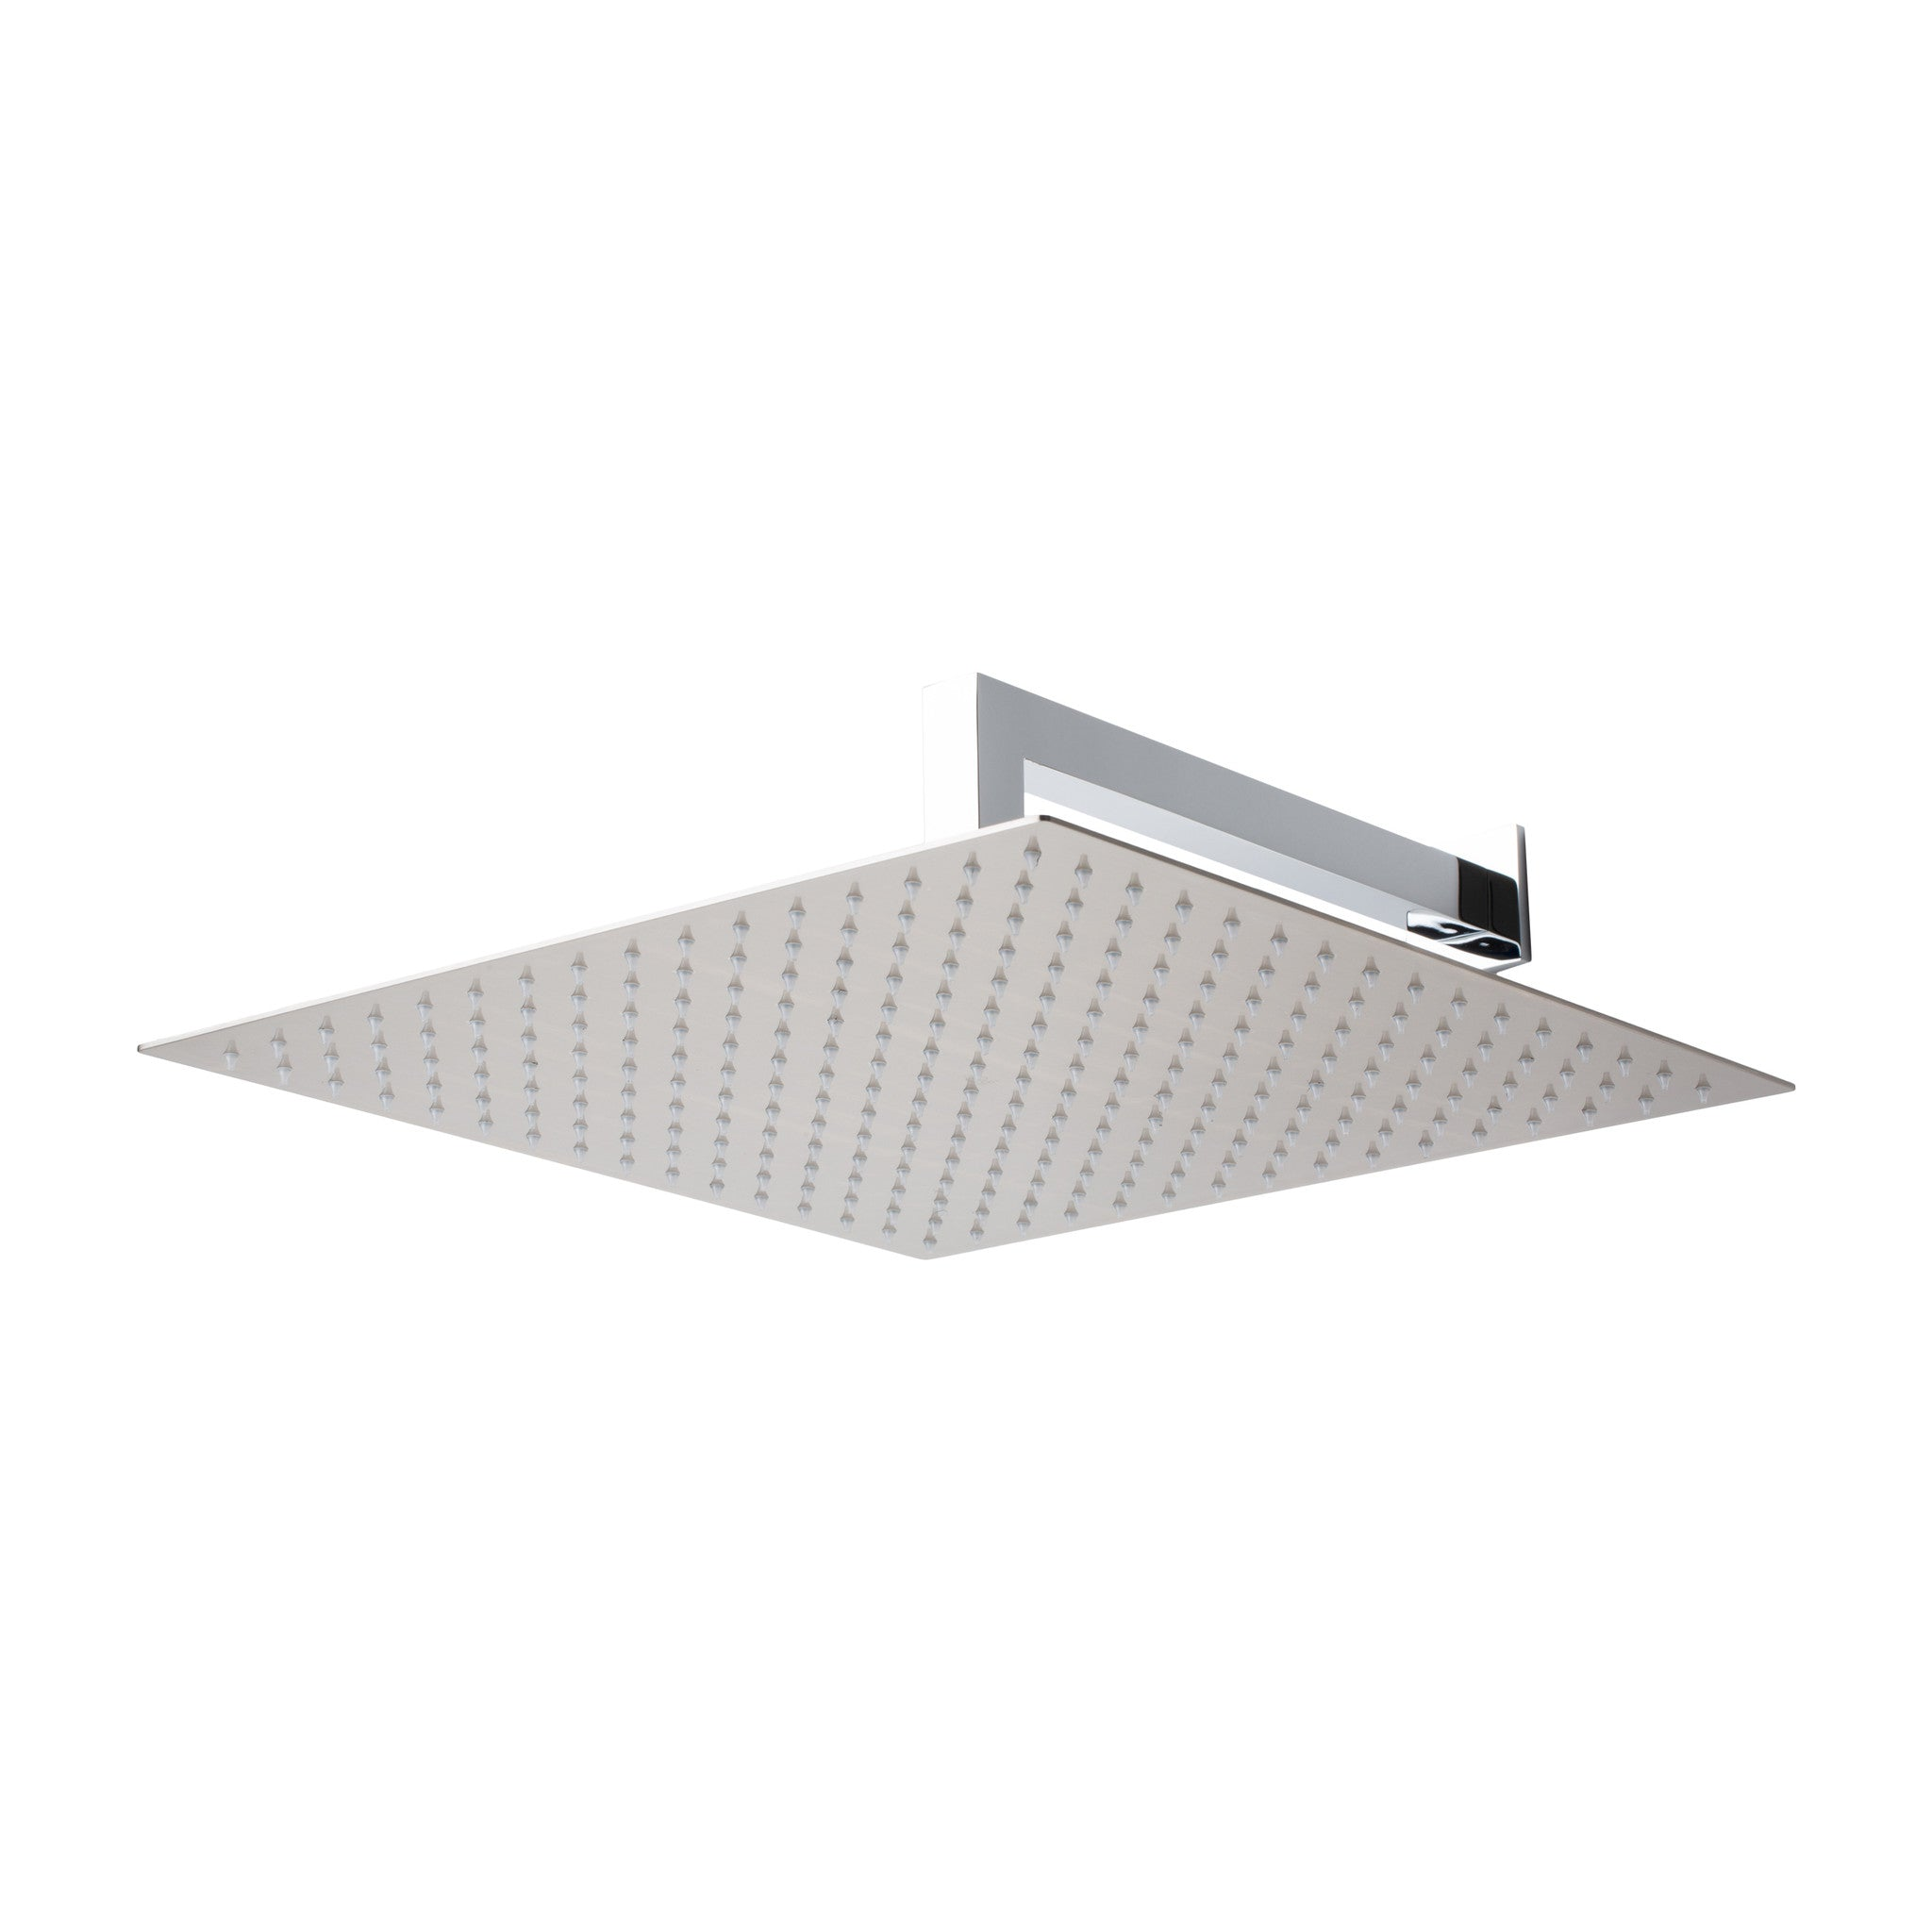 Bai 0421 Stainless Steel 16 Inch Square Rainfall Shower Head